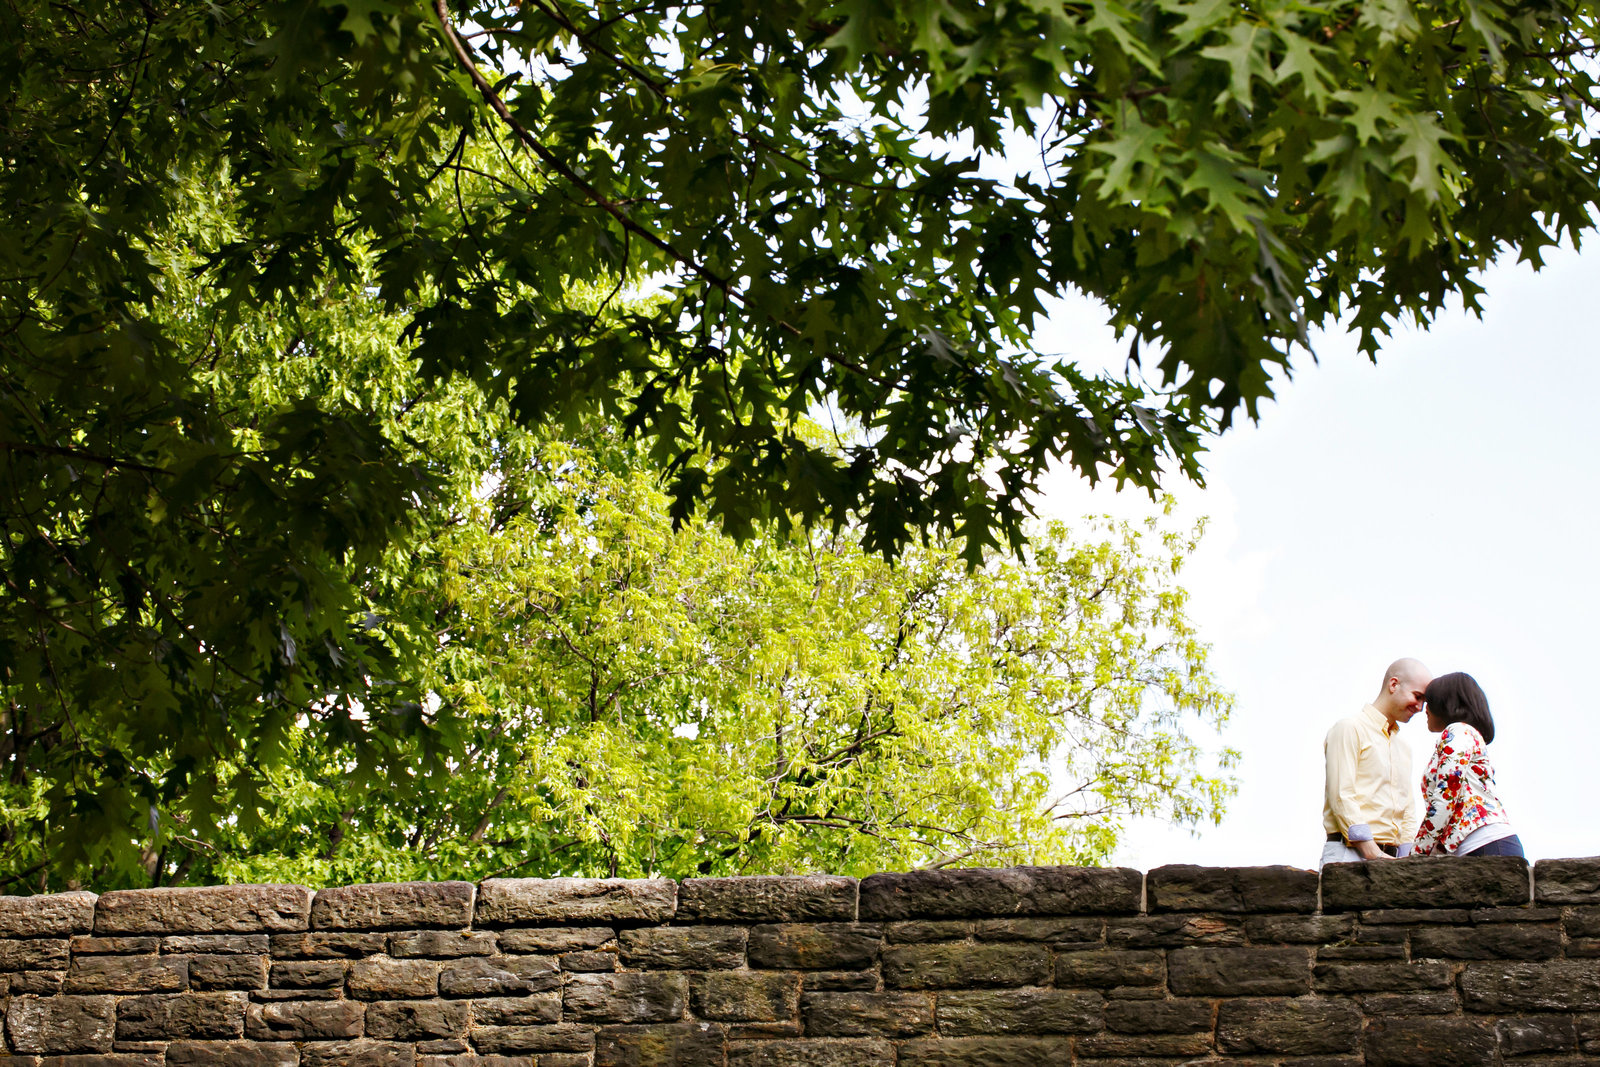 AmyAnaiz_Fort_Tyrone_Park_Cloisters_Engagement_New_York_010